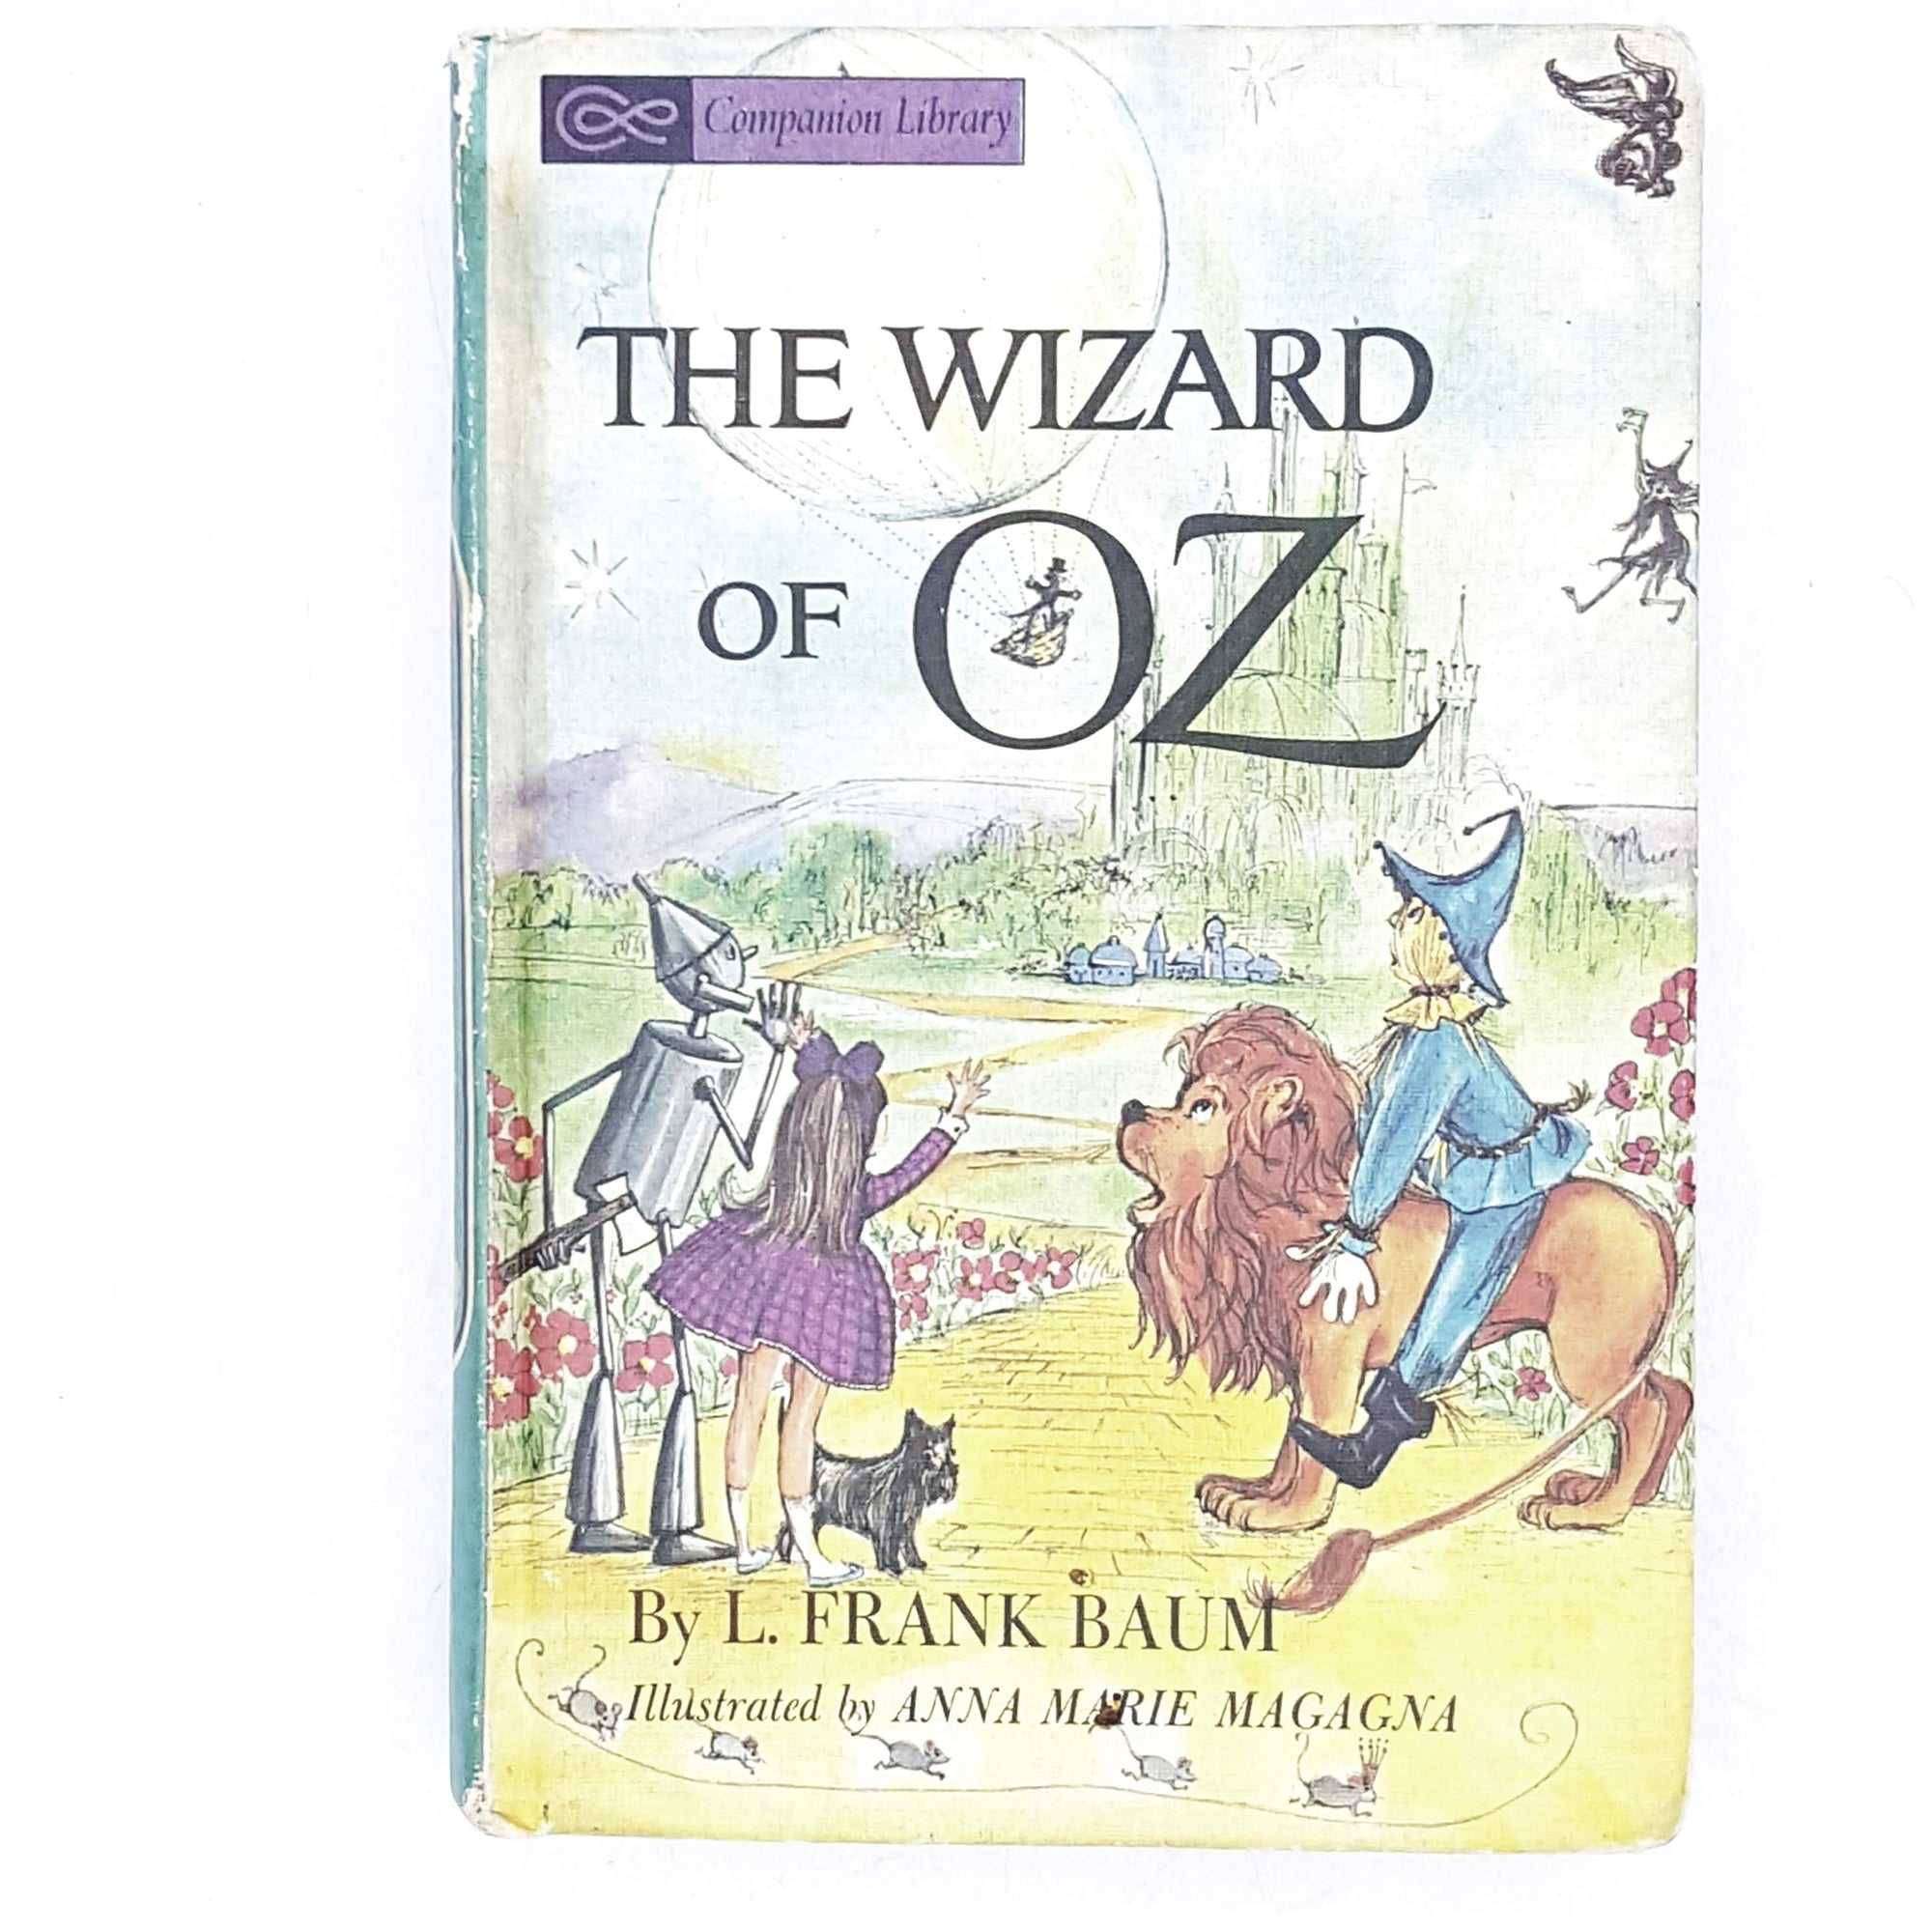 The Wizard of Oz by L. Frank Baum and The Prince and the Pauper by Samuel Clemens 1965